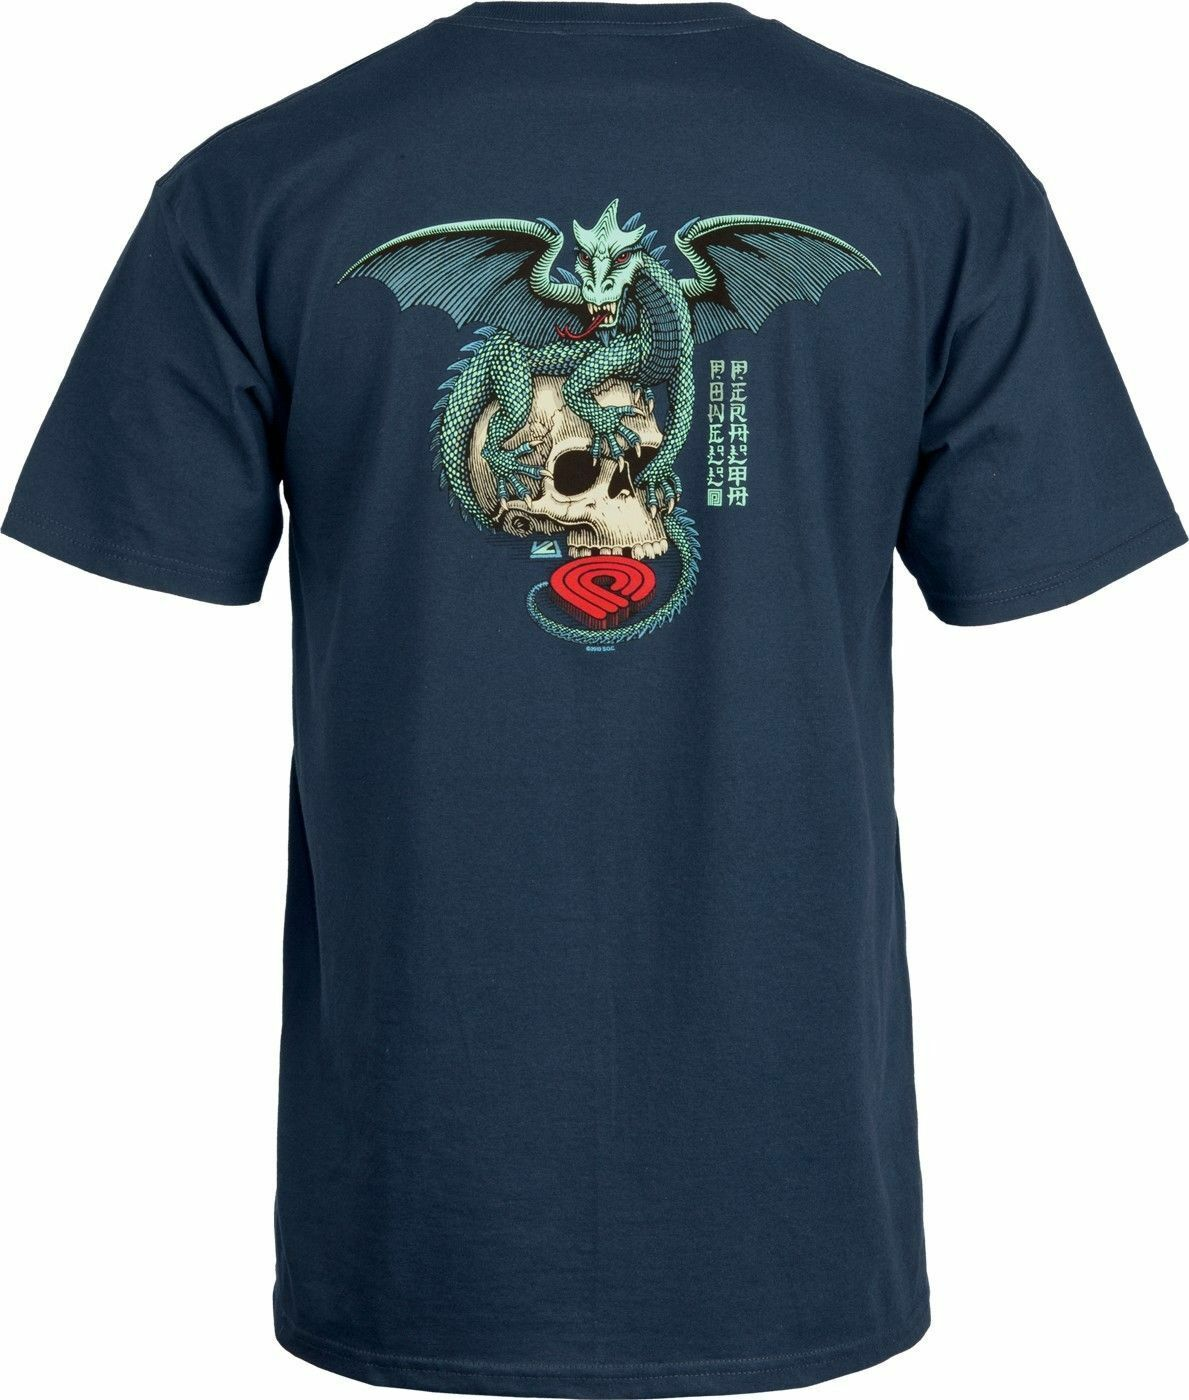 Powell Peralta T shirt Dragon Skull in Navy MSRP $24 Round Neck Best Selling Male Natural Cotton Shirt TOP TEE in T Shirts from Men 39 s Clothing